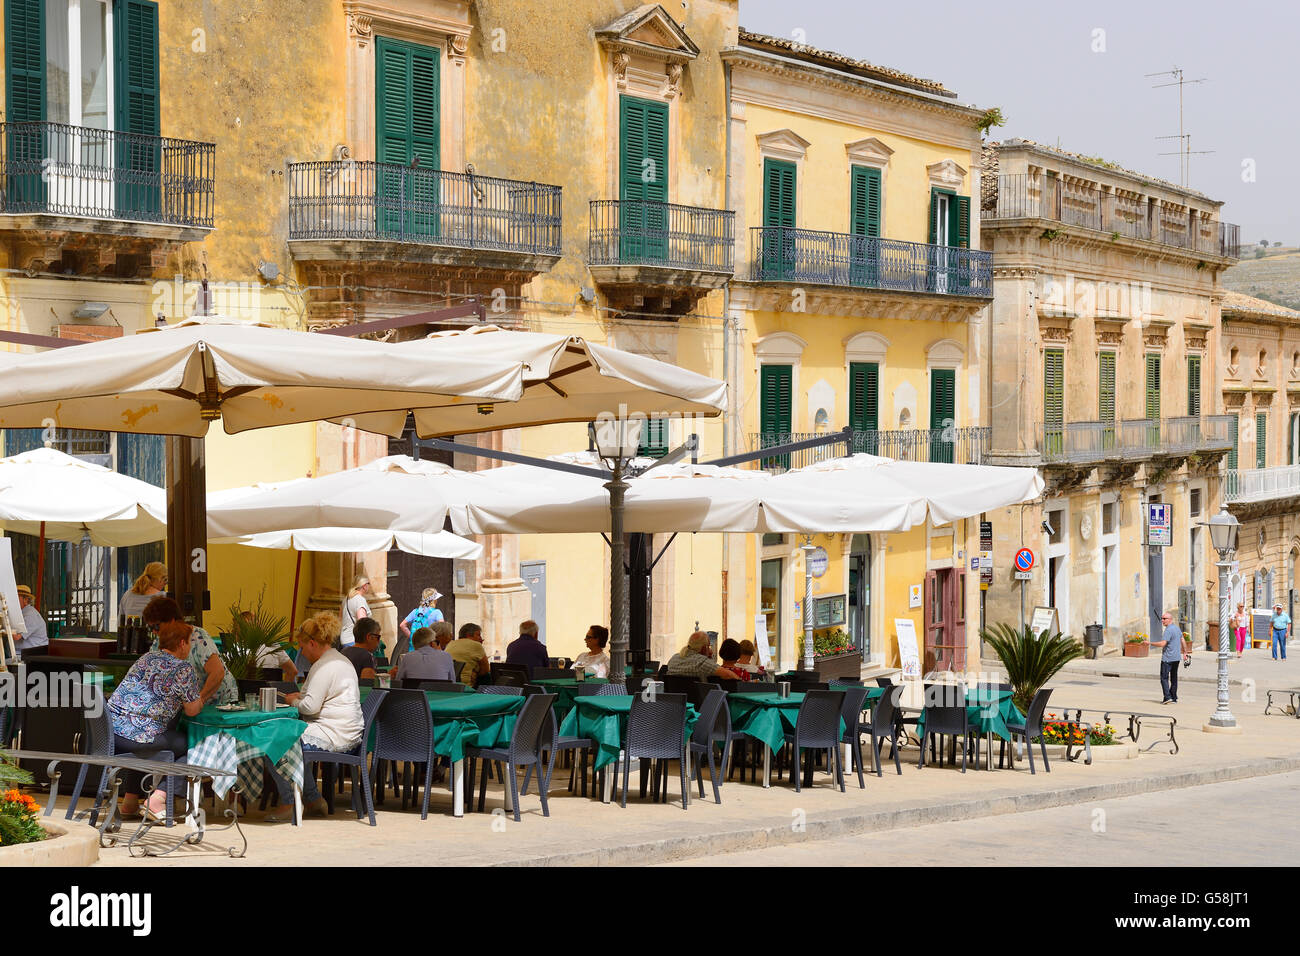 Outdoor cafes in Piazza Duomo in Ragusa Ibla, Sicily, Italy - Stock Image